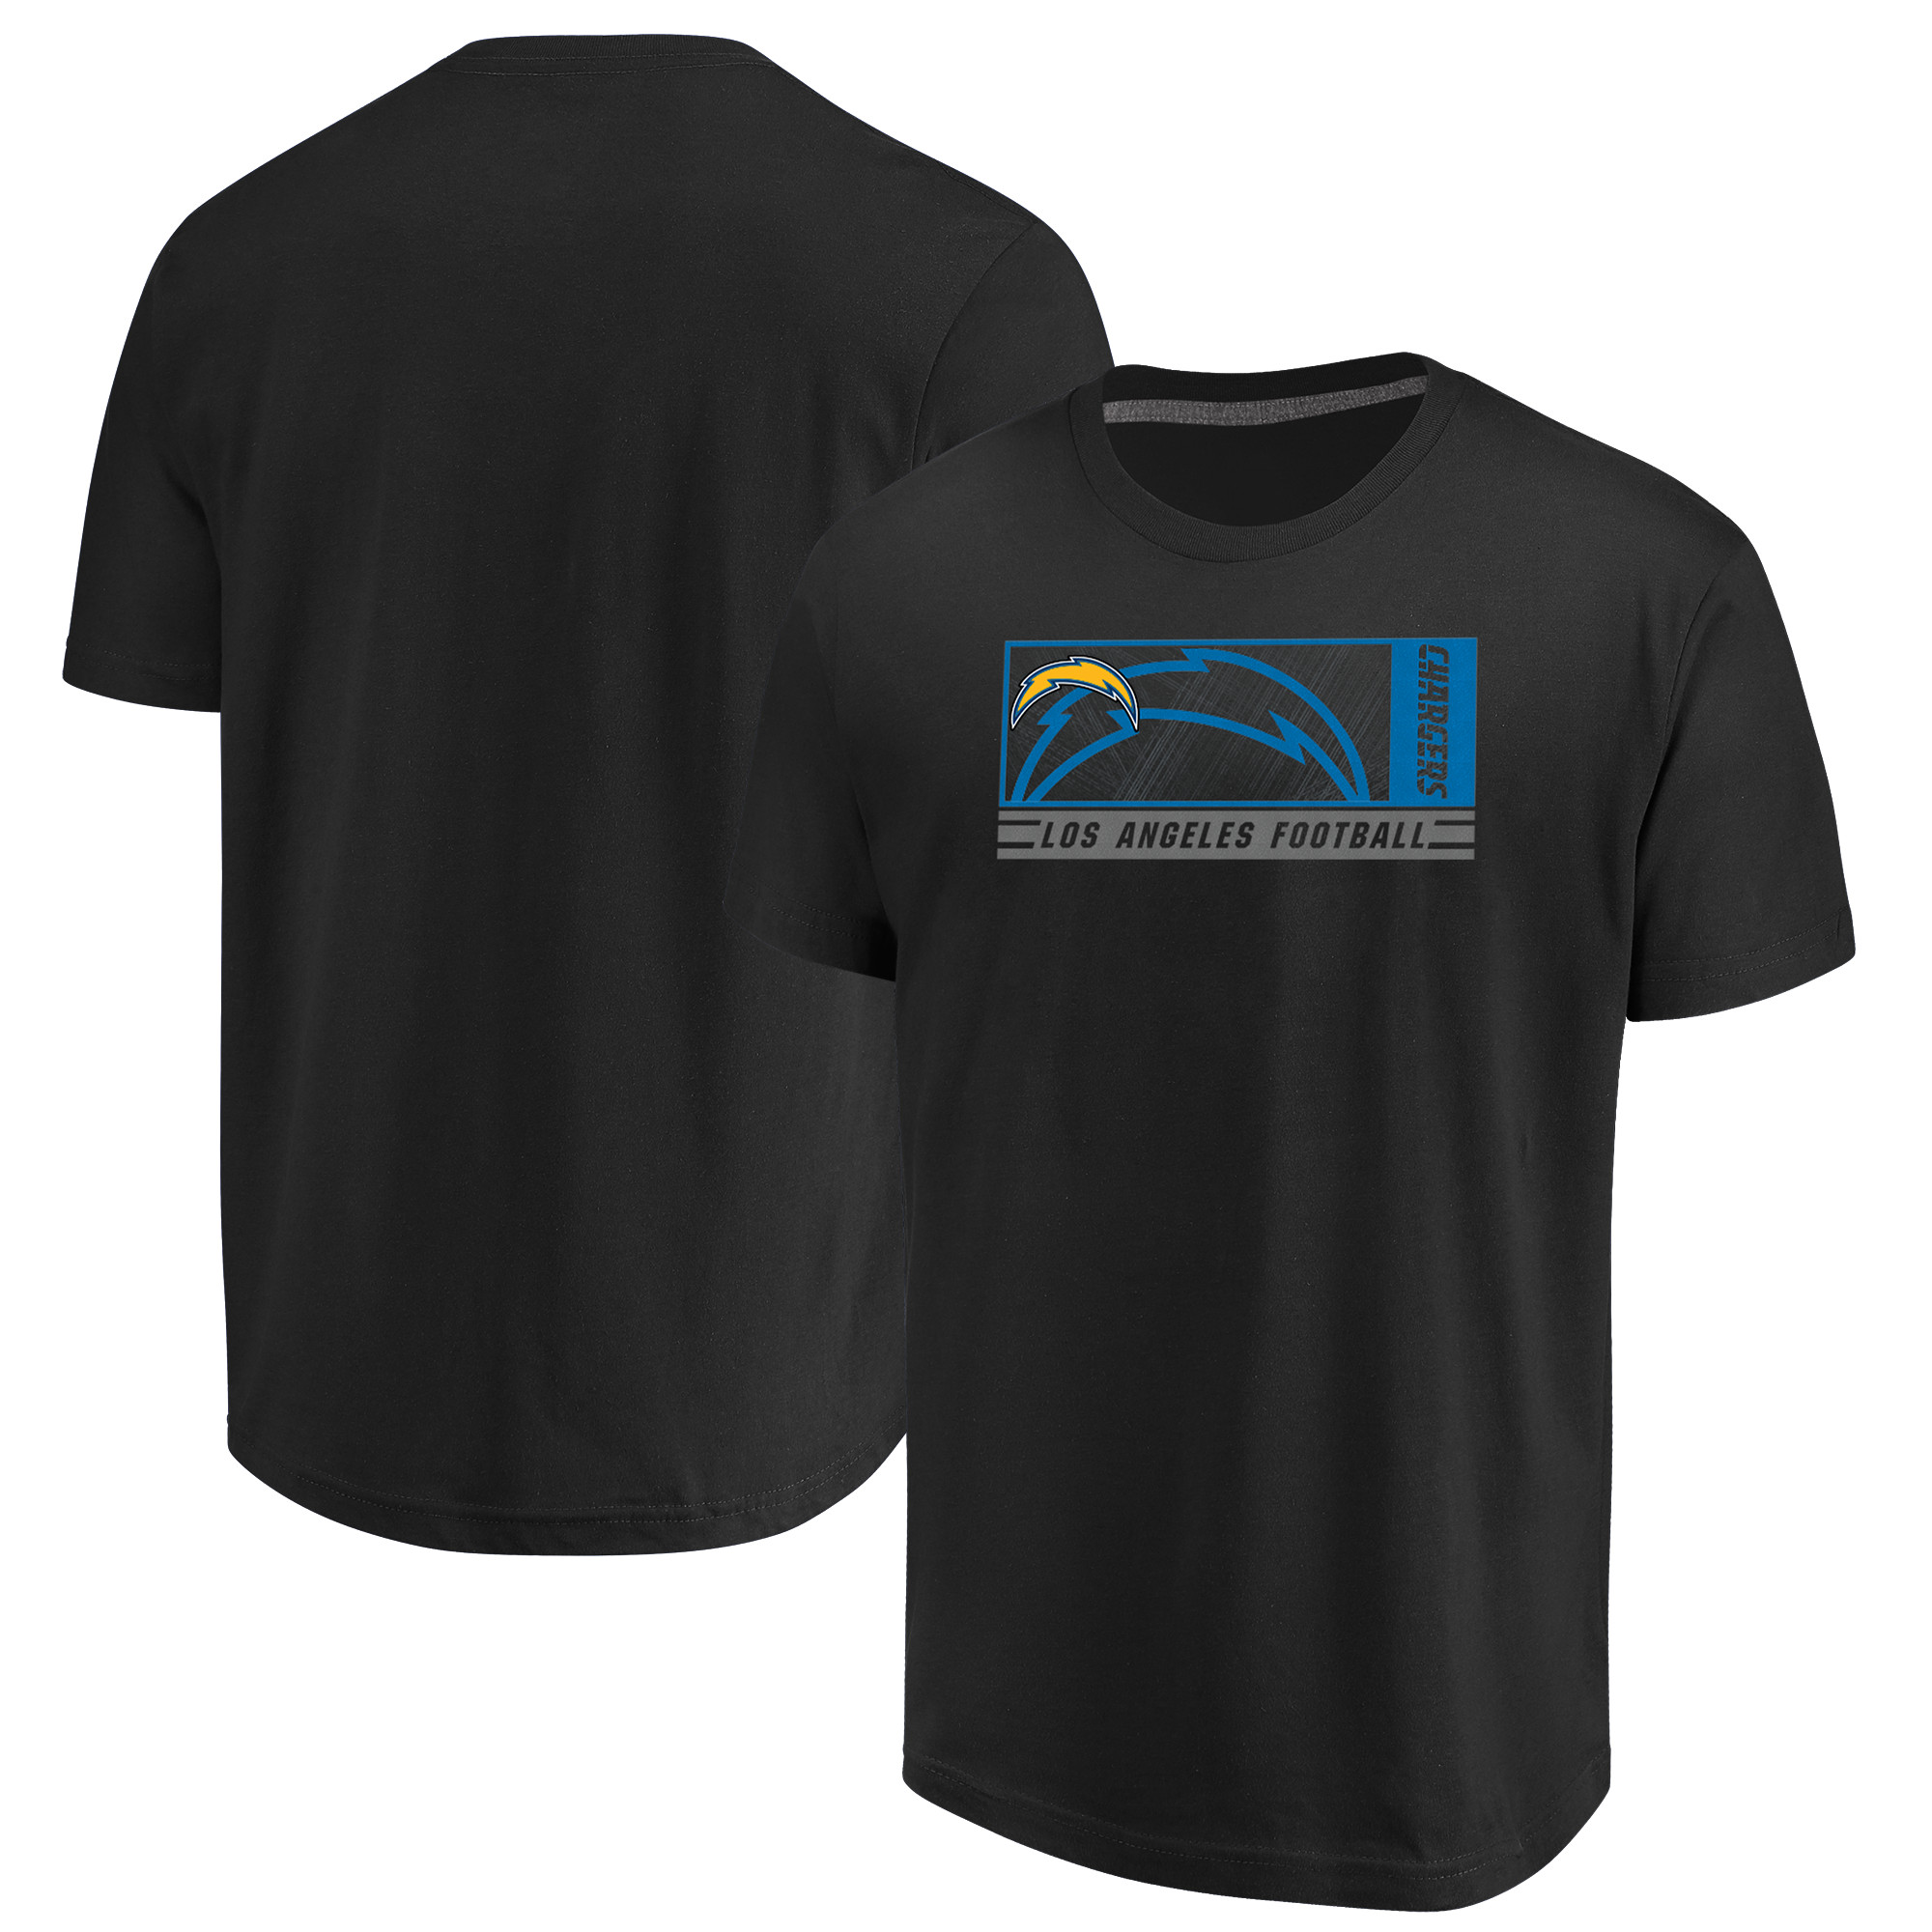 Los Angeles Chargers Majestic Hook and Ladder T-Shirt - Black